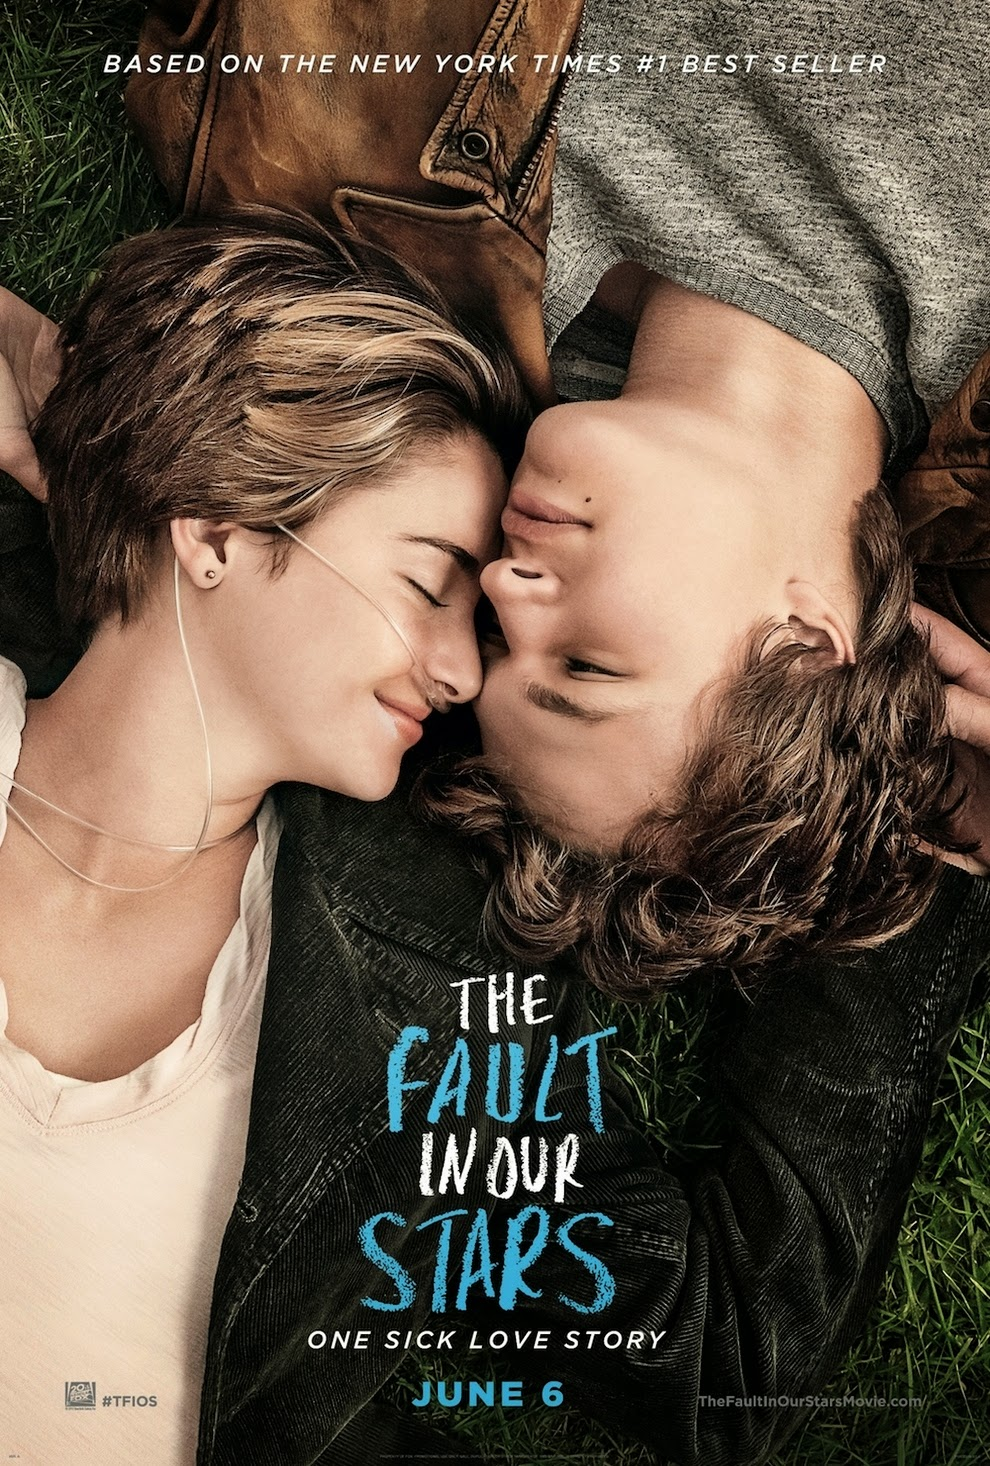 The Fault In Our Stars — 3 out of 5 stars